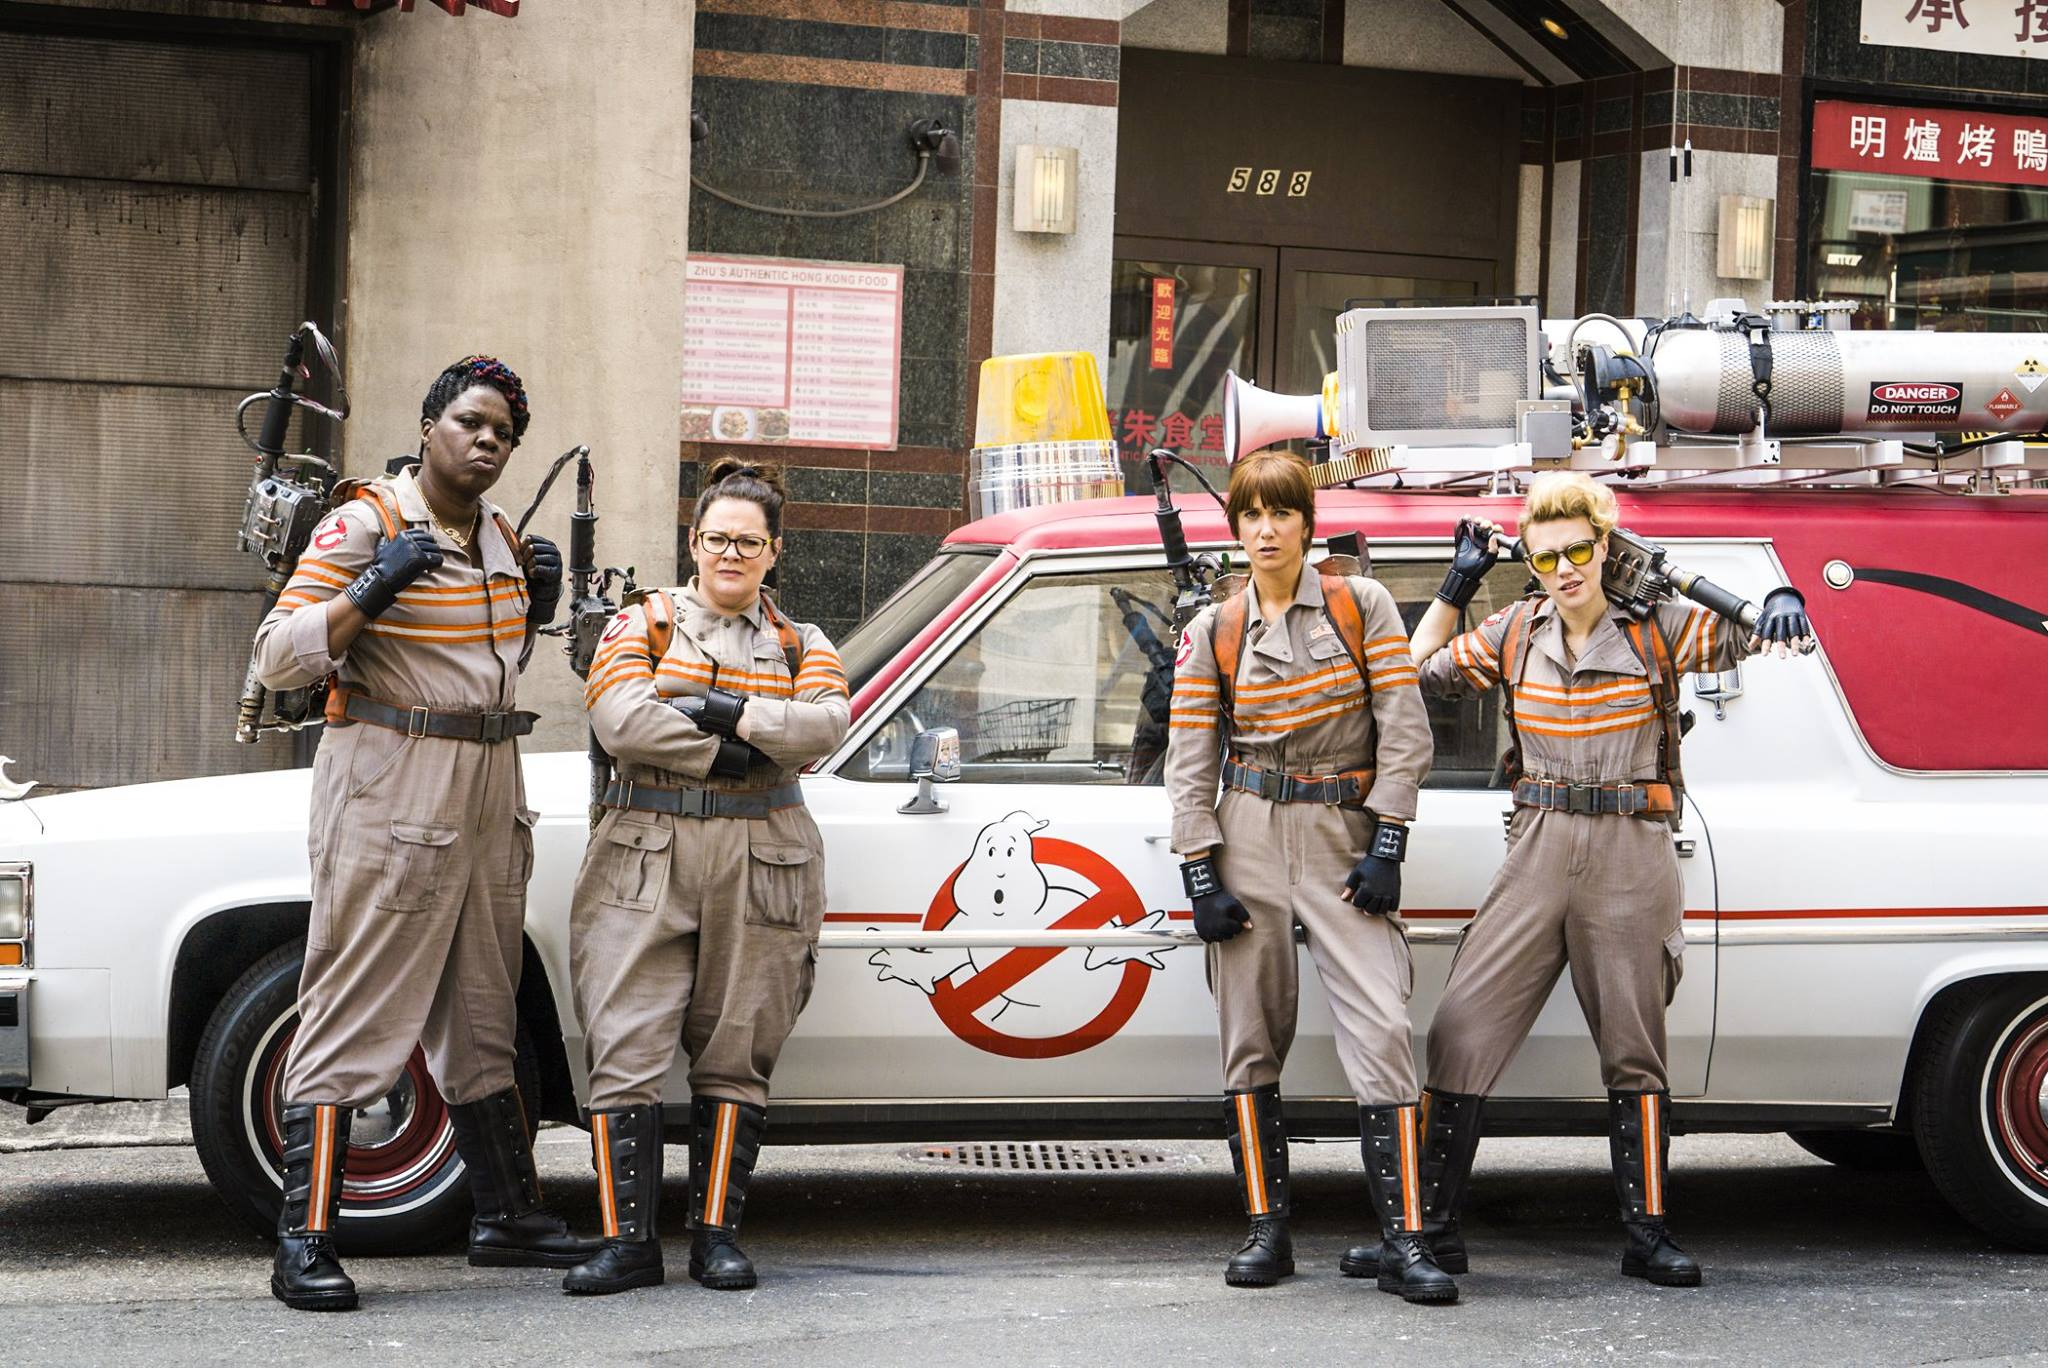 Female Ghostbusters photo